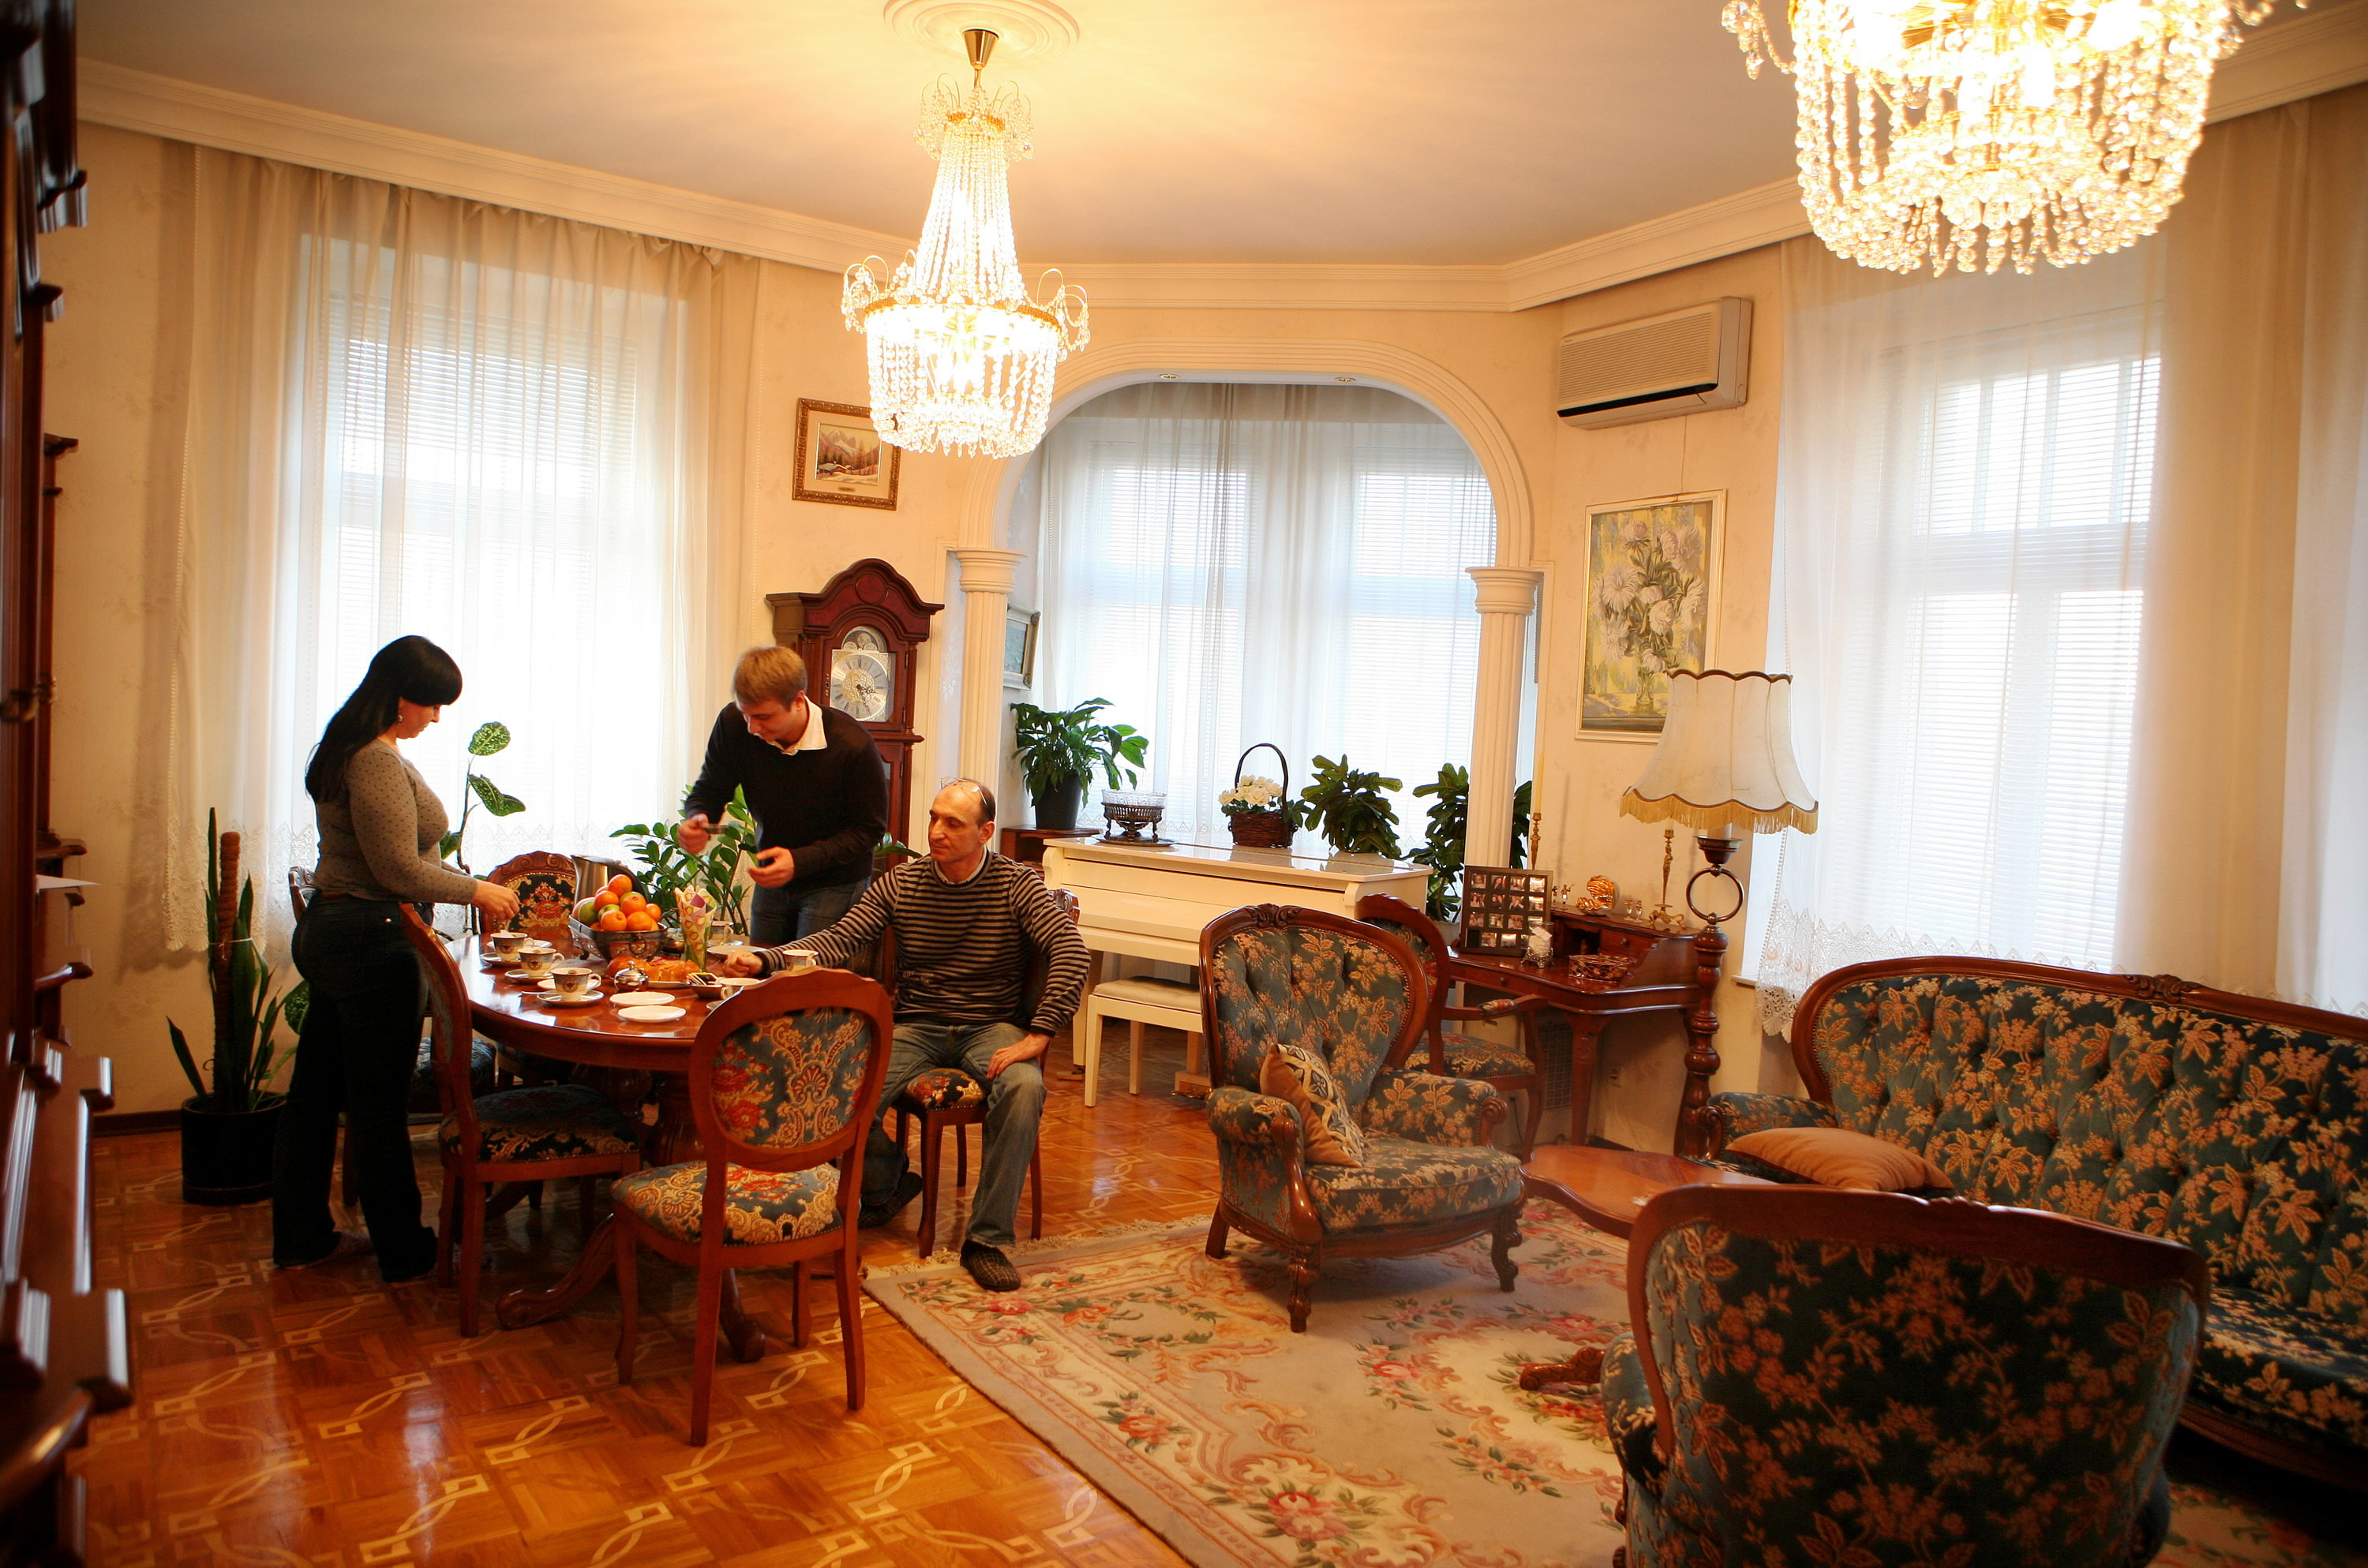 Kirill Shchitov and his parents, Vladimir and Alla, are seen having tea in their living room in Moscow, Russia, in this undated photo.